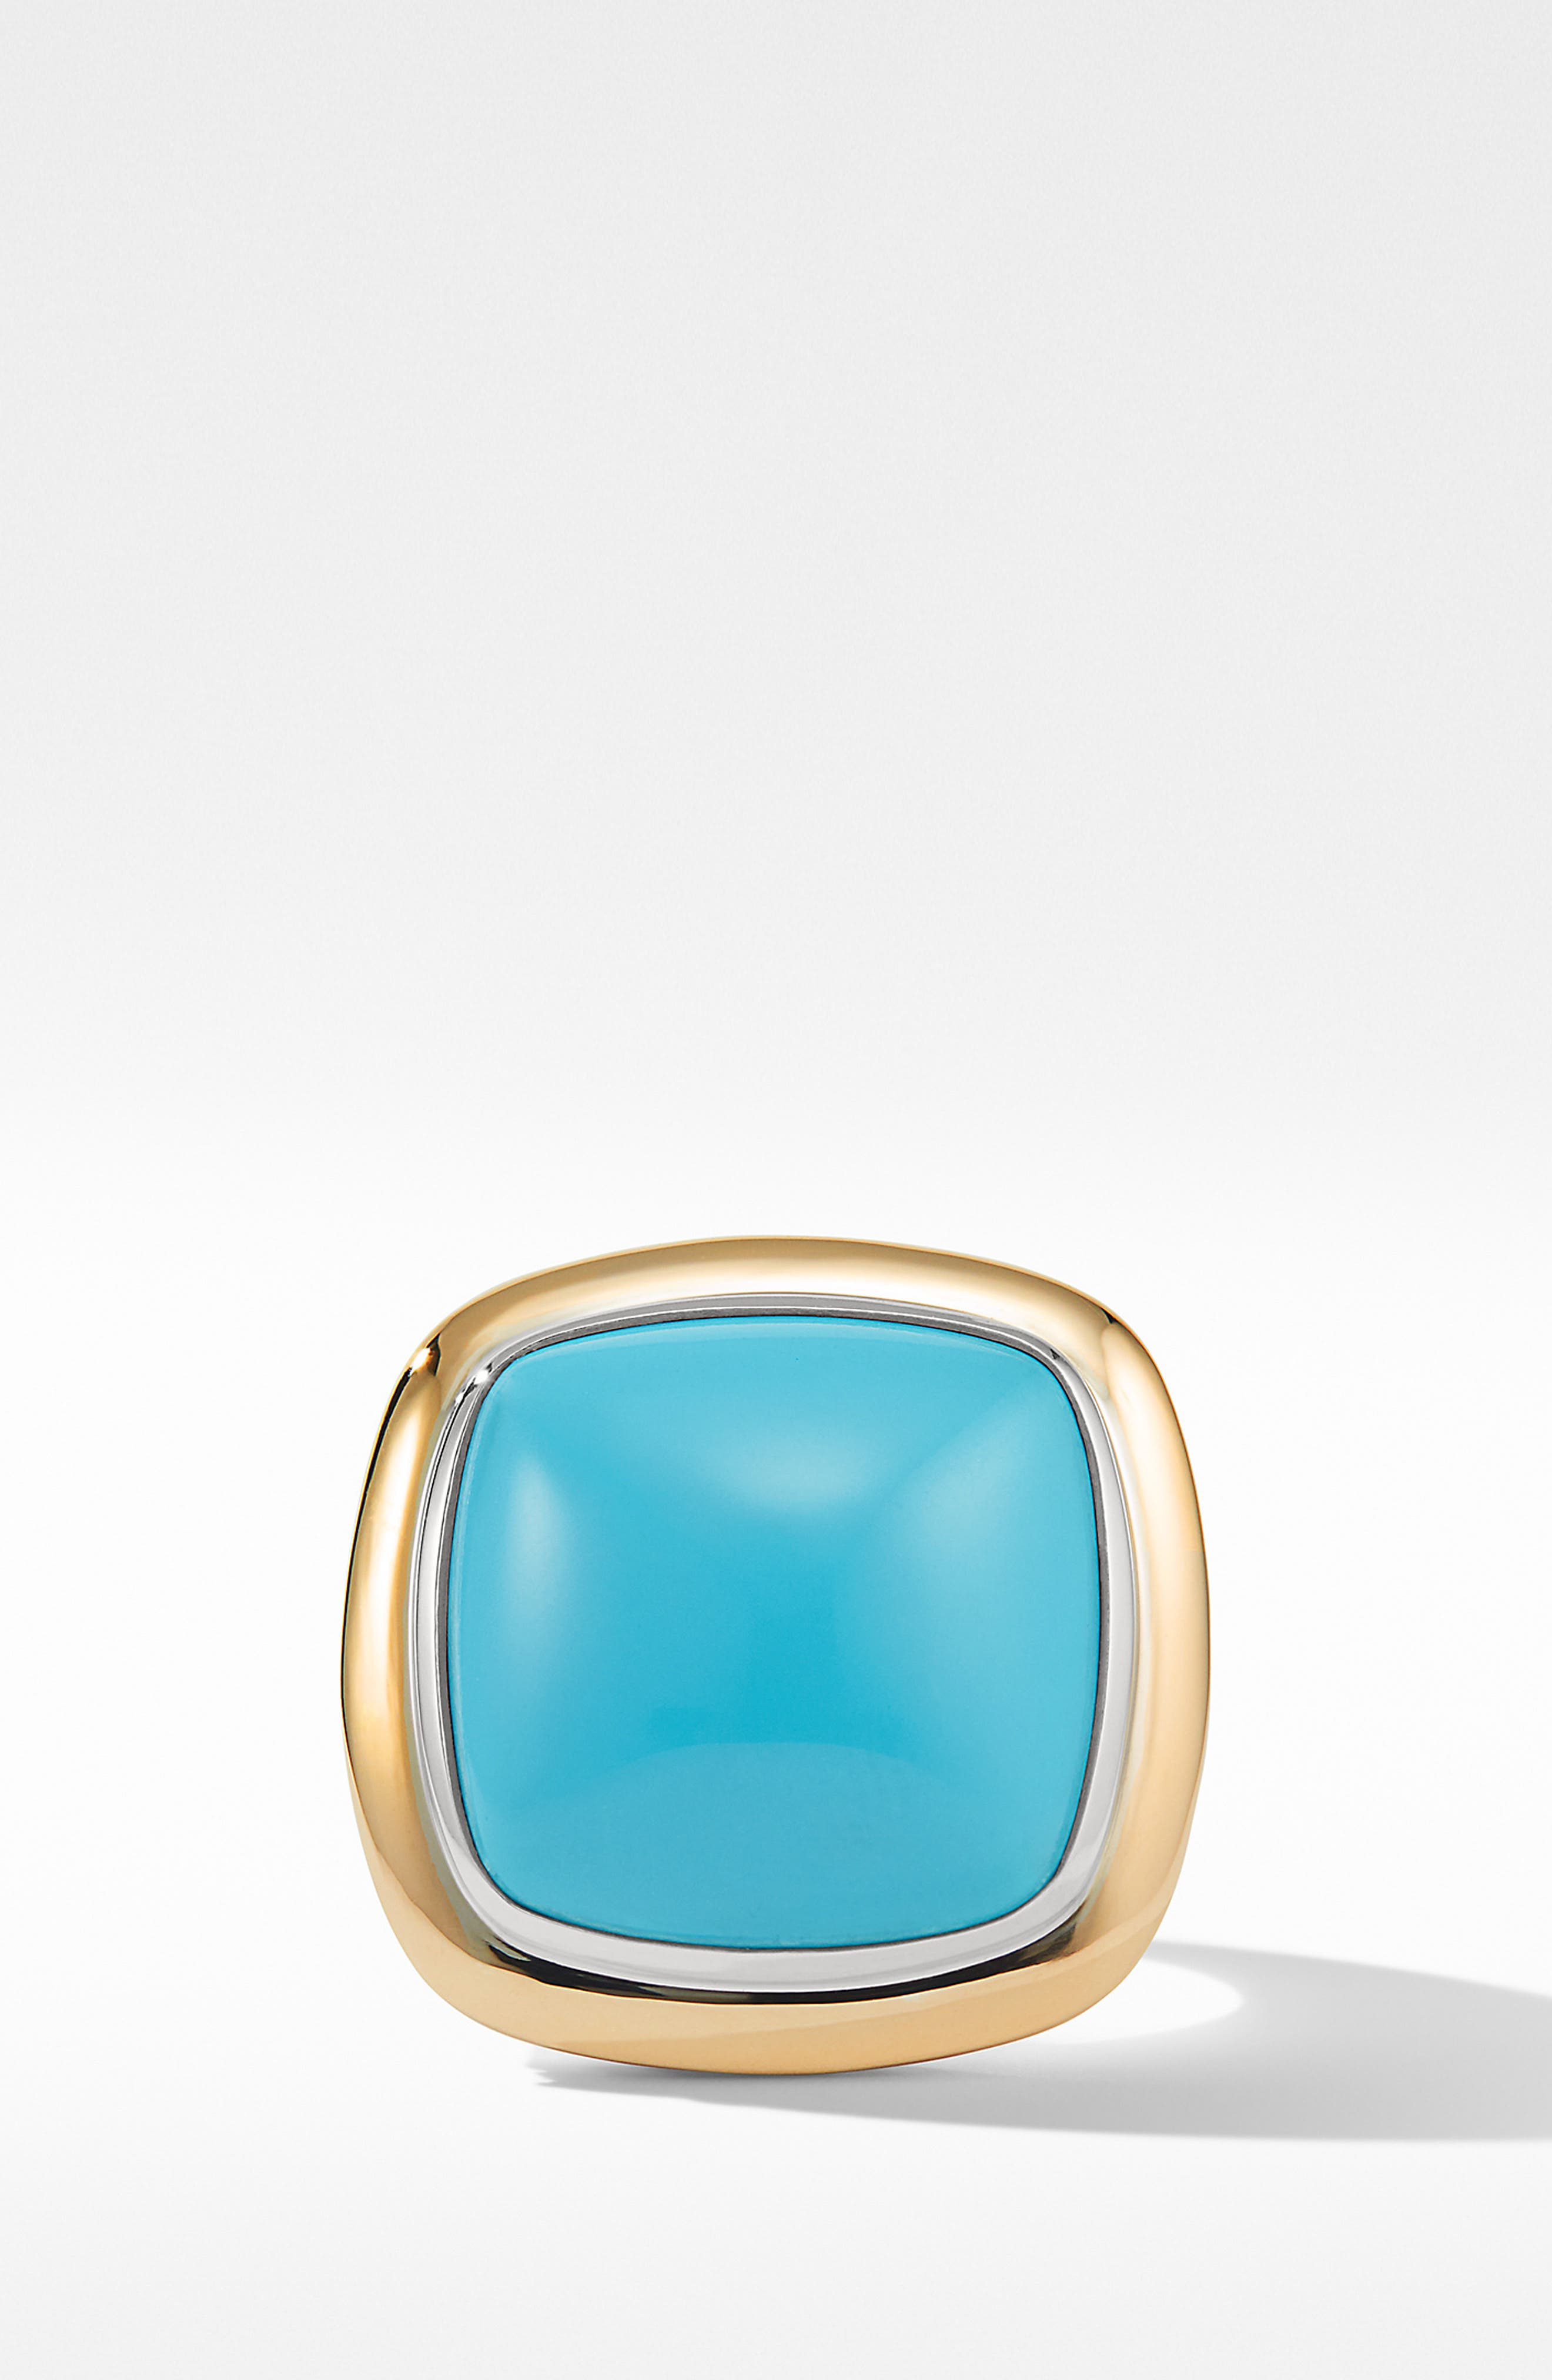 Albion<sup>®</sup> Statement Ring with 18K Gold and Champagne Citrine or Reconstituted Turquoise,                             Alternate thumbnail 2, color,                             RECONSTITUTED TURQUOISE